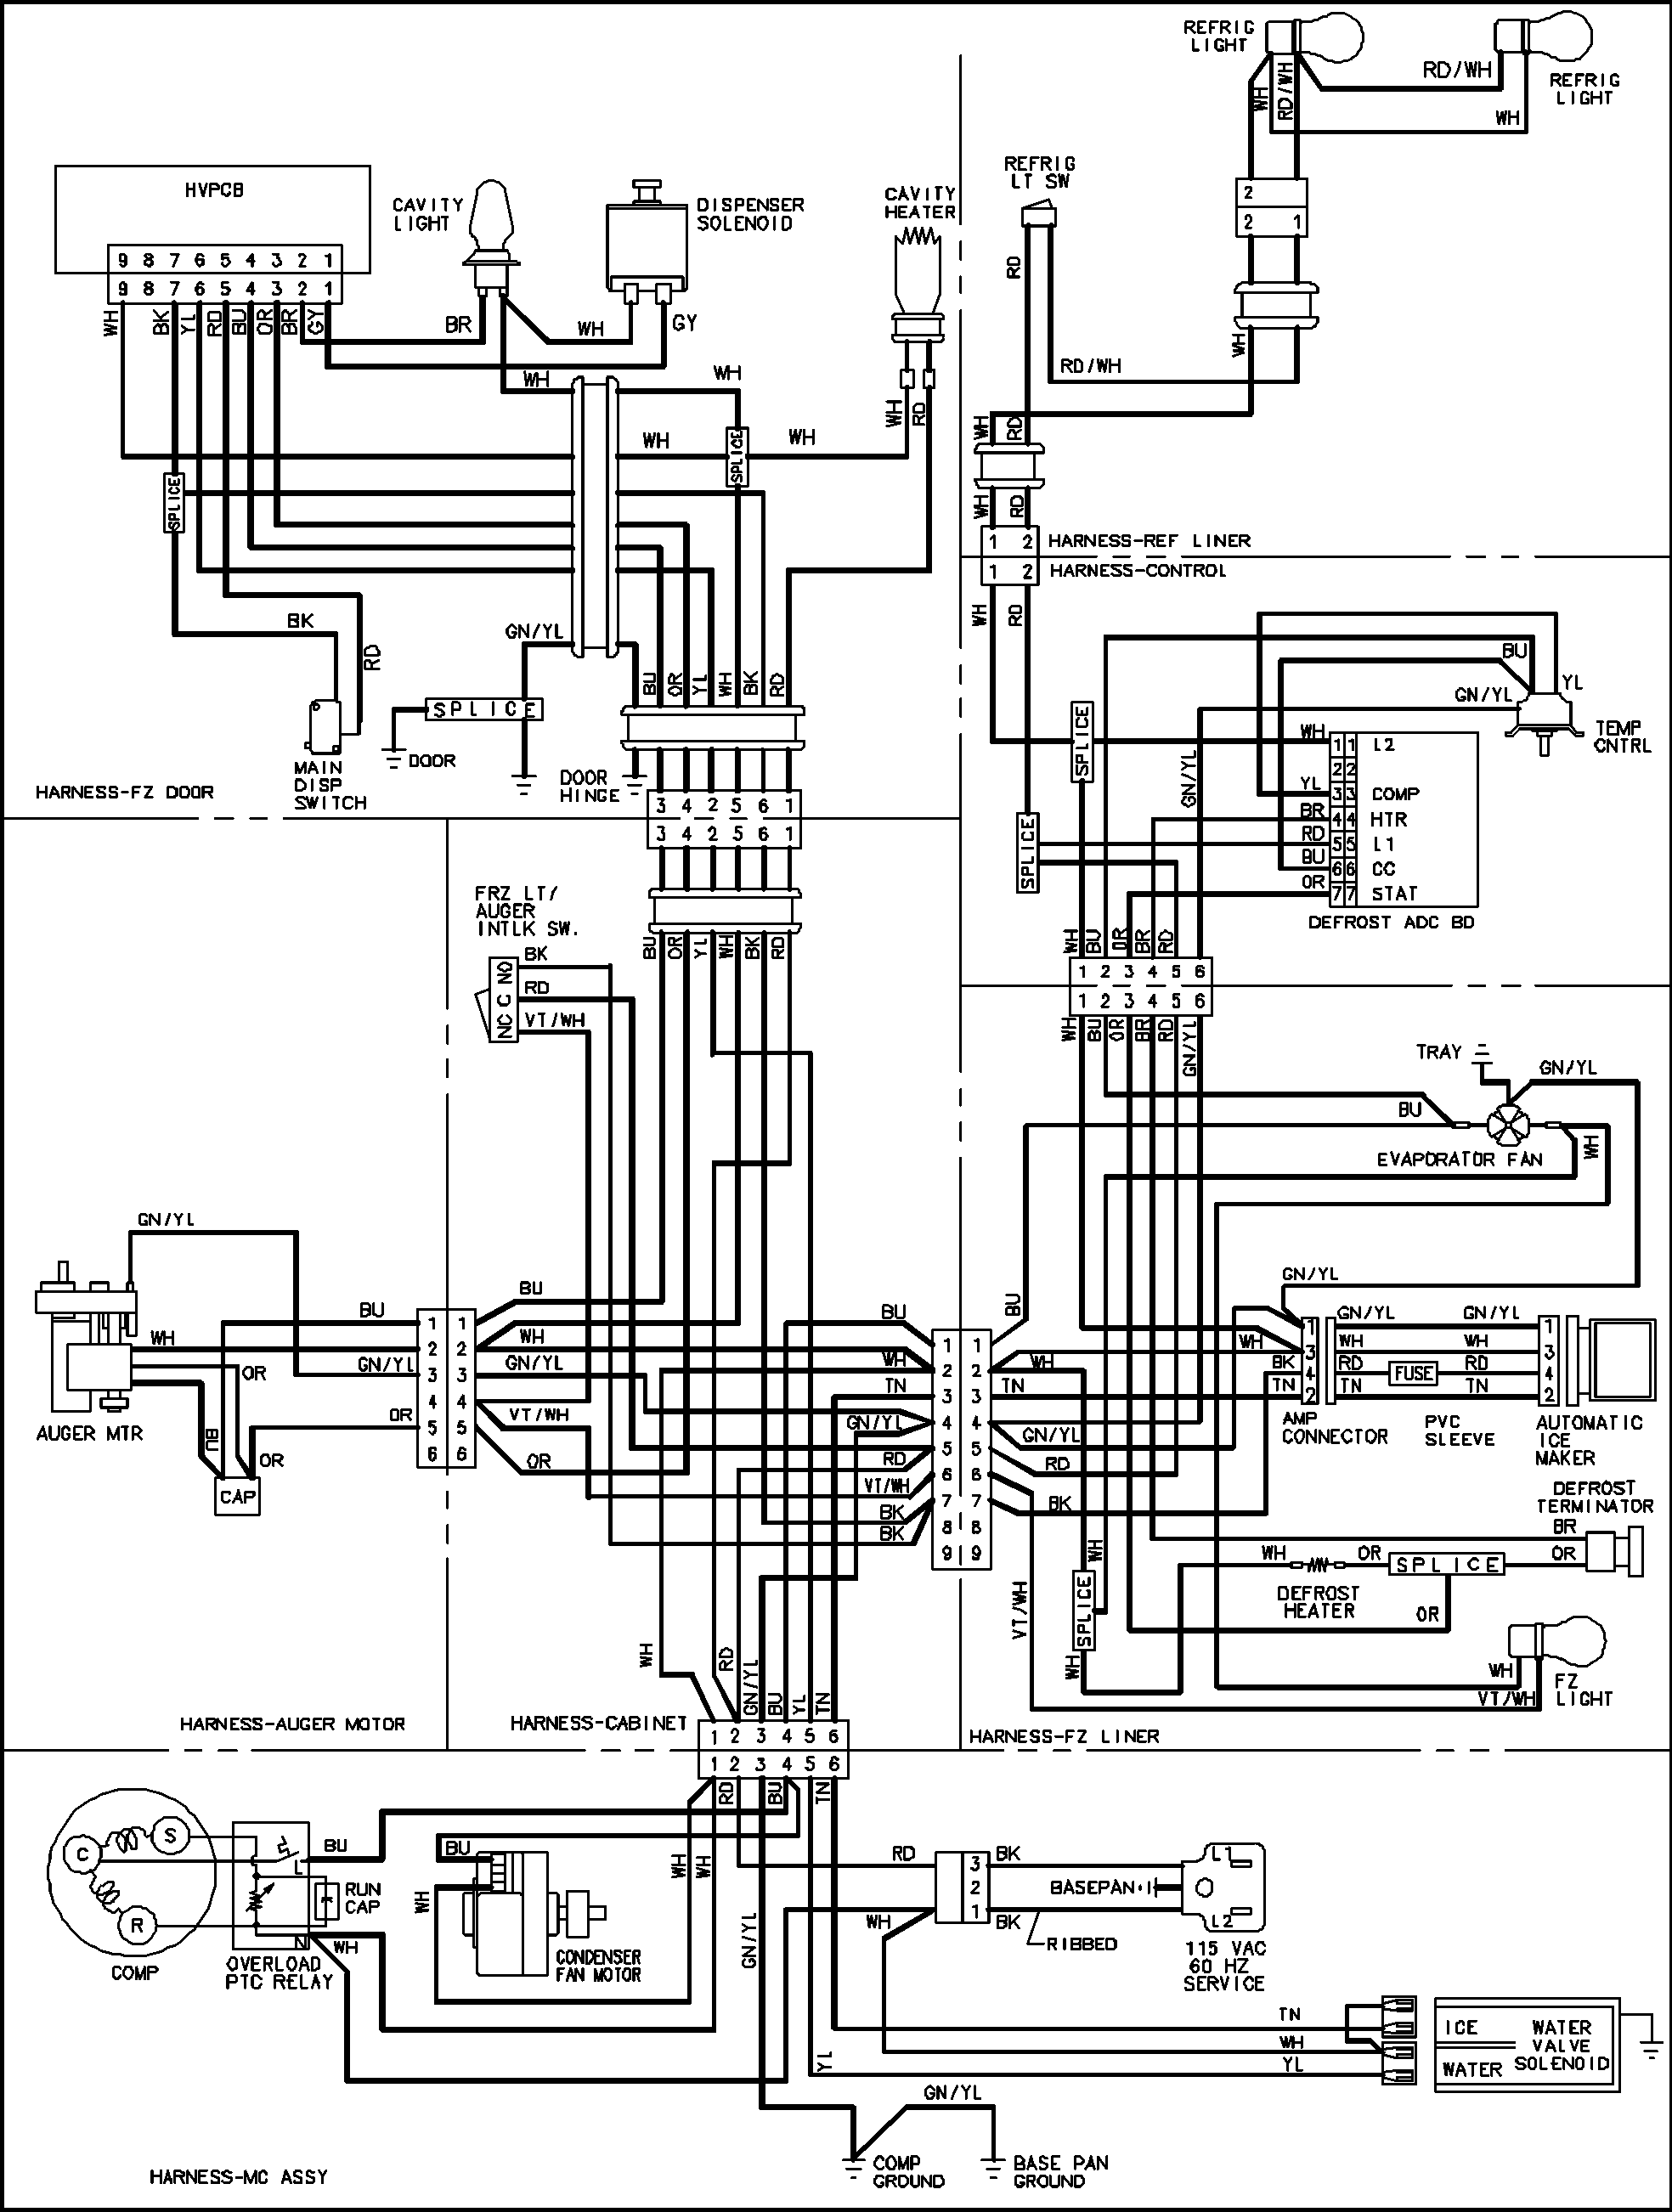 Building Electrical Wiring Layout